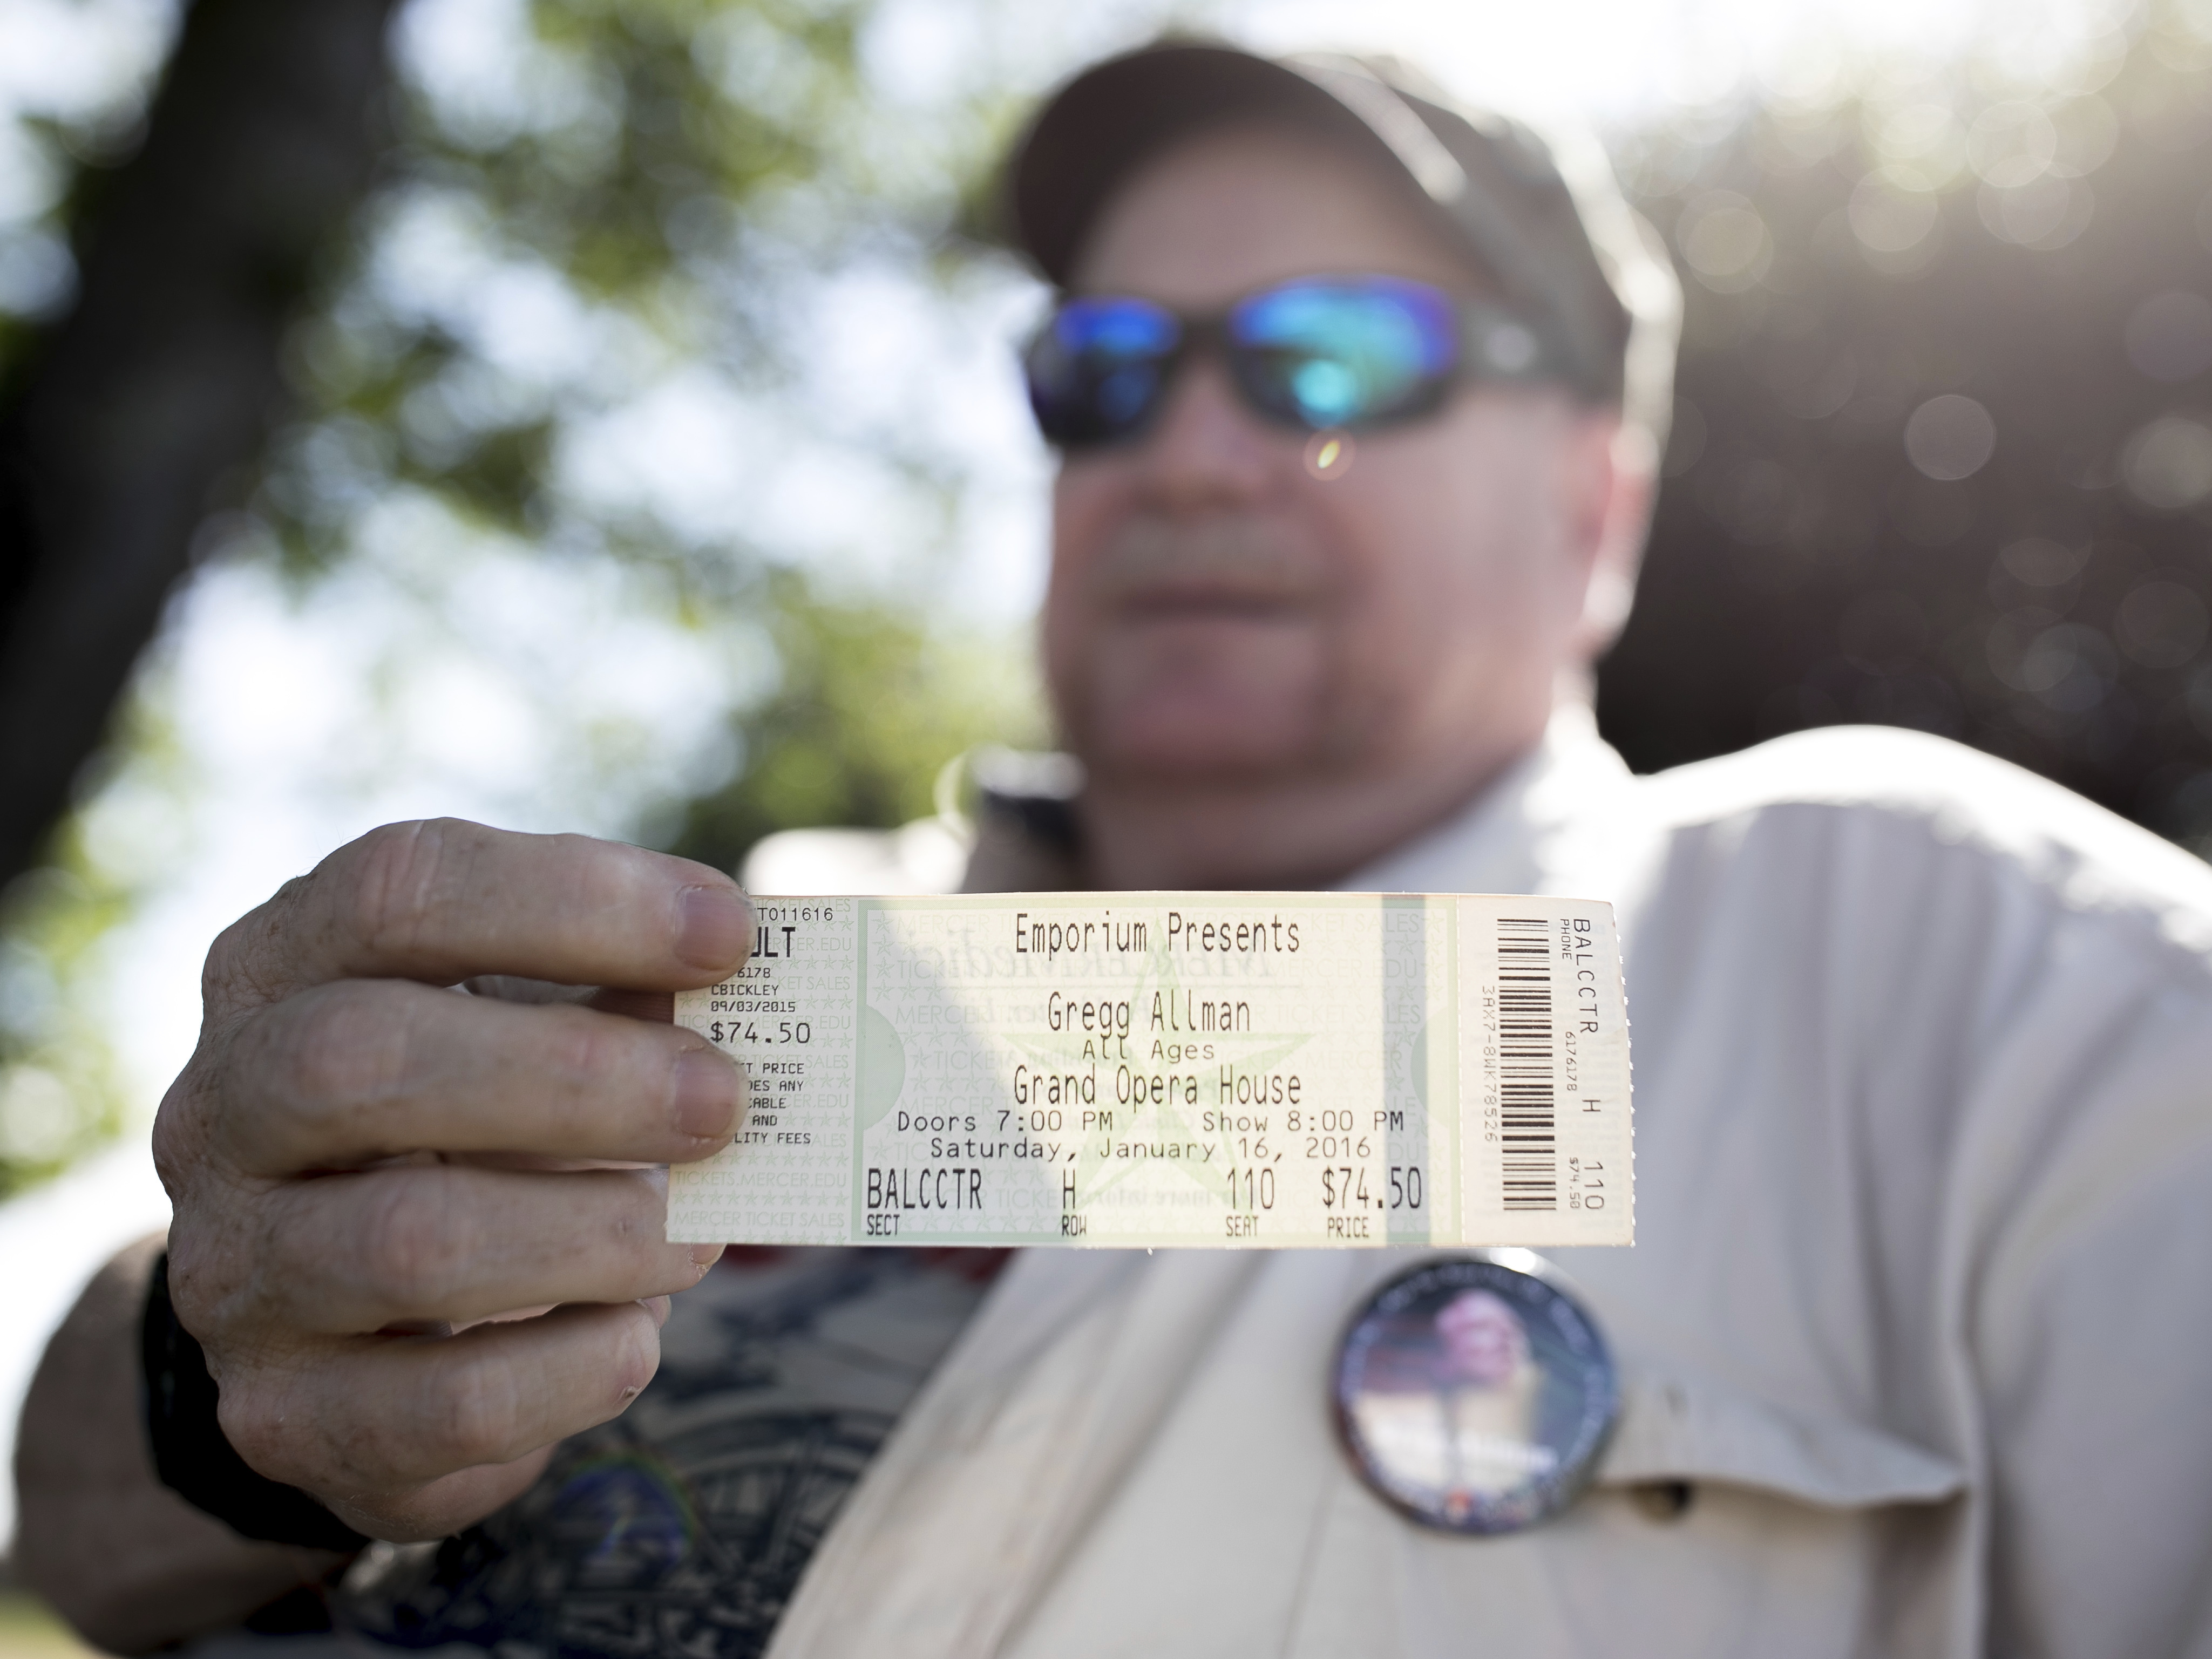 Mark Elliott shows a concert ticket from the last Gregg Allman concert he attended, Saturday, June 3, 2017, in Macon, Ga. Family, friends and fans on Saturday will say goodbye to the music legend, who died over the Memorial Day weekend at the age of 69. (AP Photo/Branden Camp)